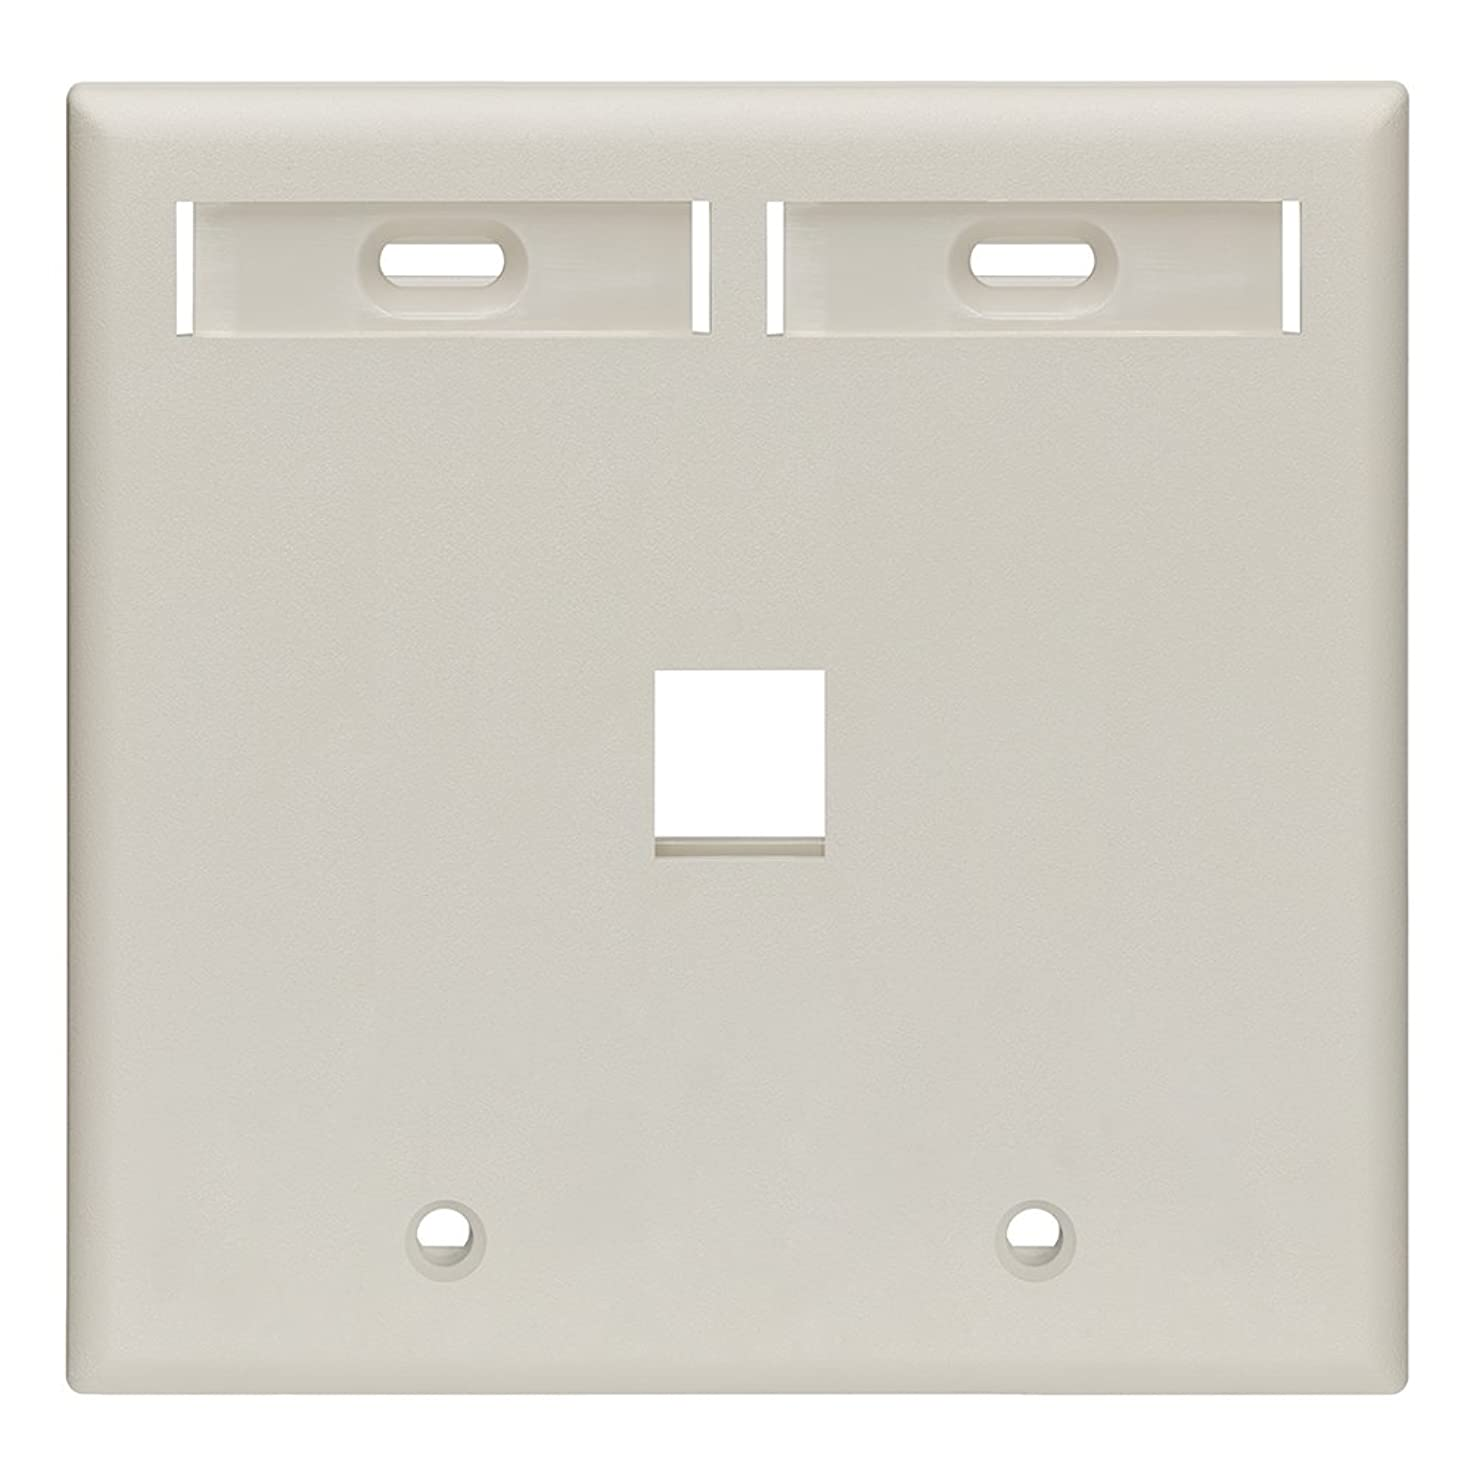 Leviton 42080-1TP 1-Port Dual Gang QuickPort Wallplate with ID Windows, Light Almond